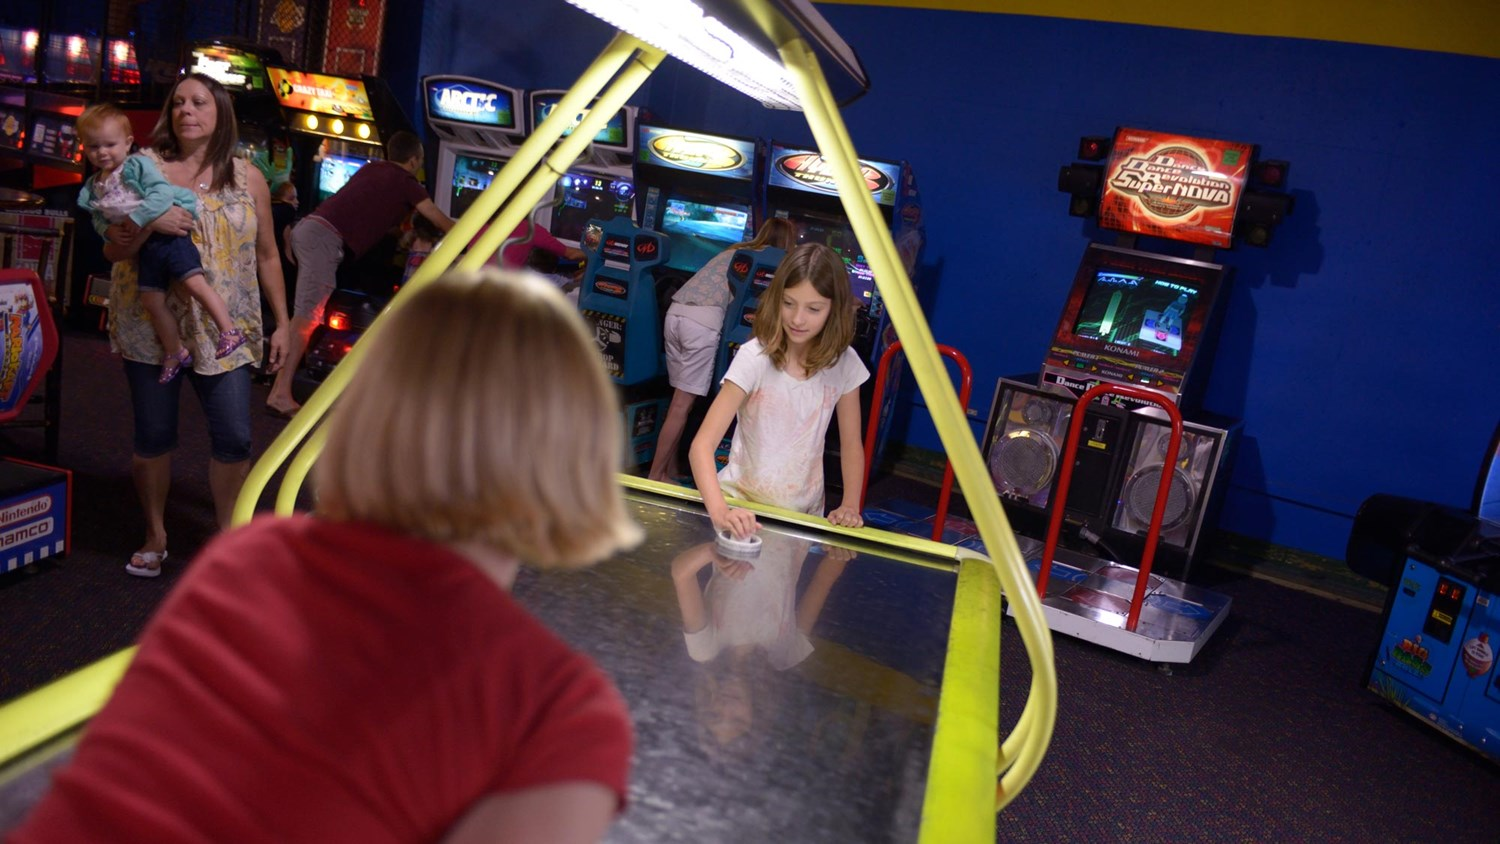 A couple girls playing air hockey